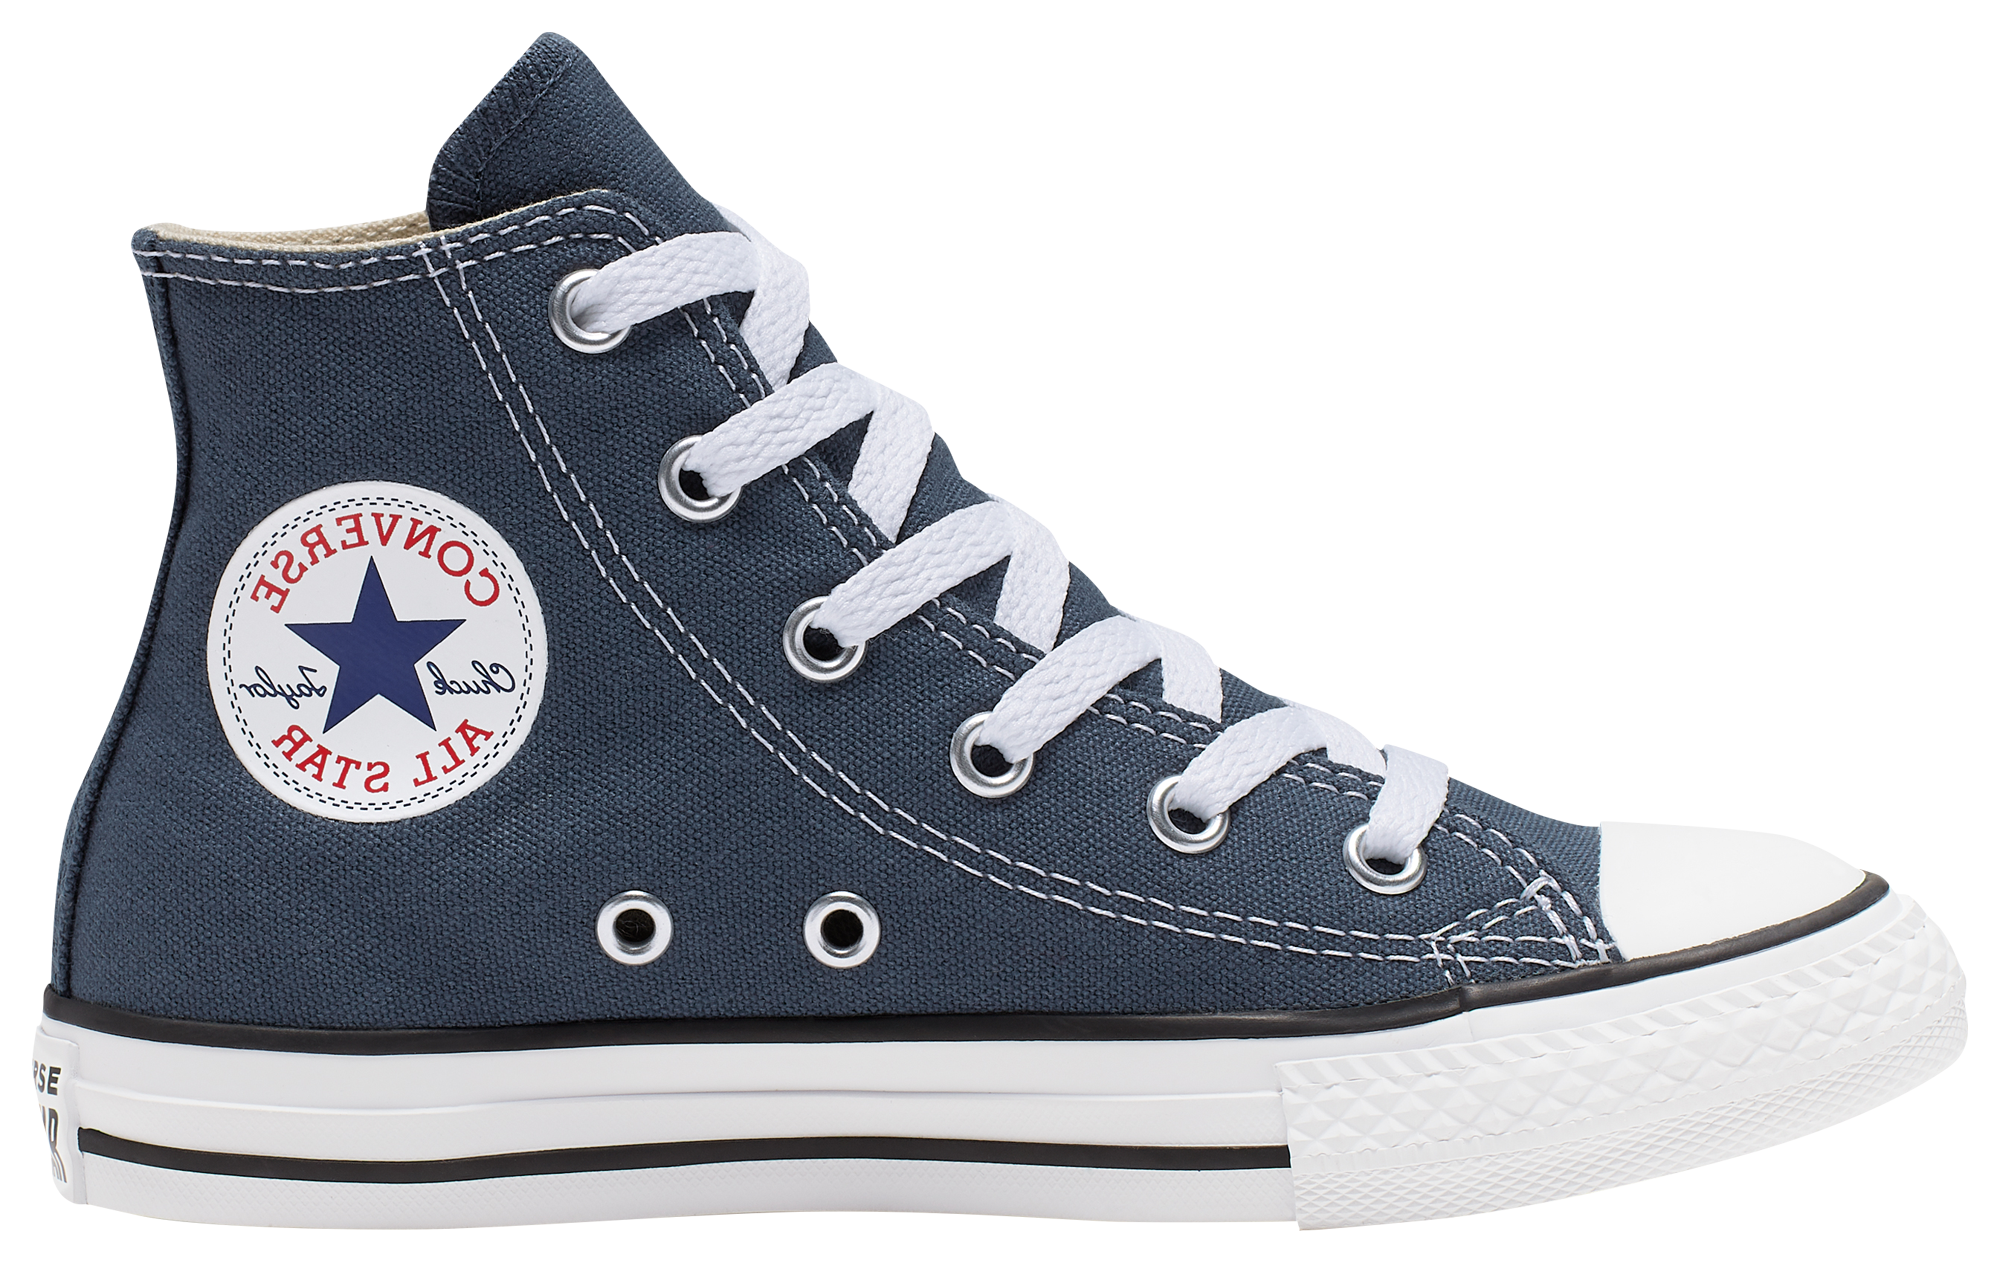 Boys Converse All Star Hi - Preschool - Navy